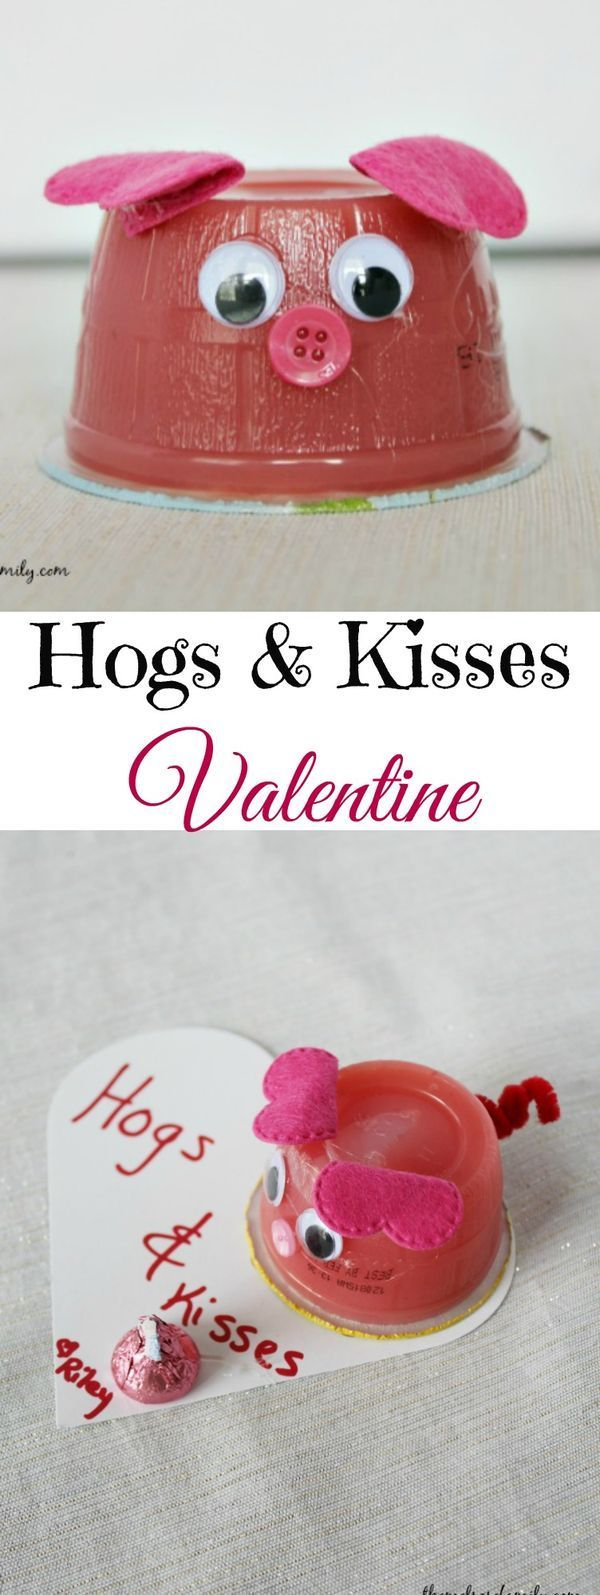 Hogs & Kisses Valentine is the cutest Valentine idea for a class or just someone you want to cheer up.